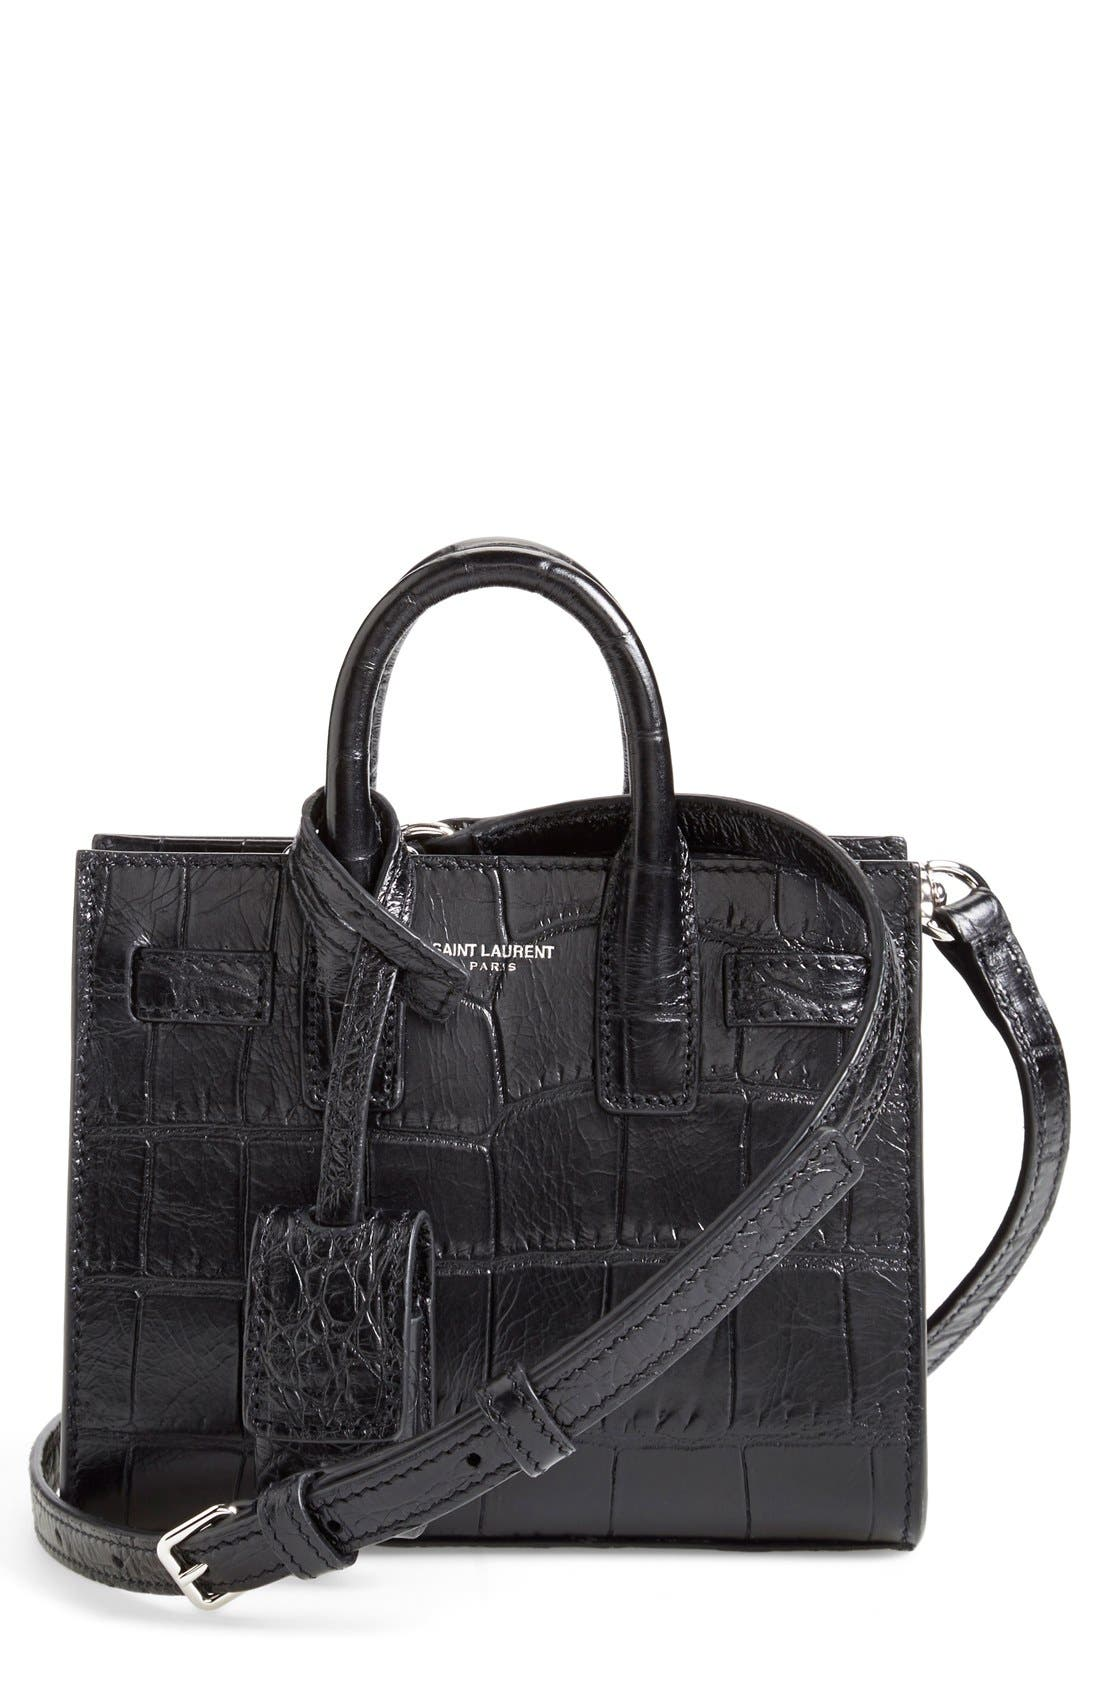 Alternate Image 1 Selected - Saint Laurent 'Toy Sac de Jour' Croc Embossed Calfskin Leather Tote (Extra Small)